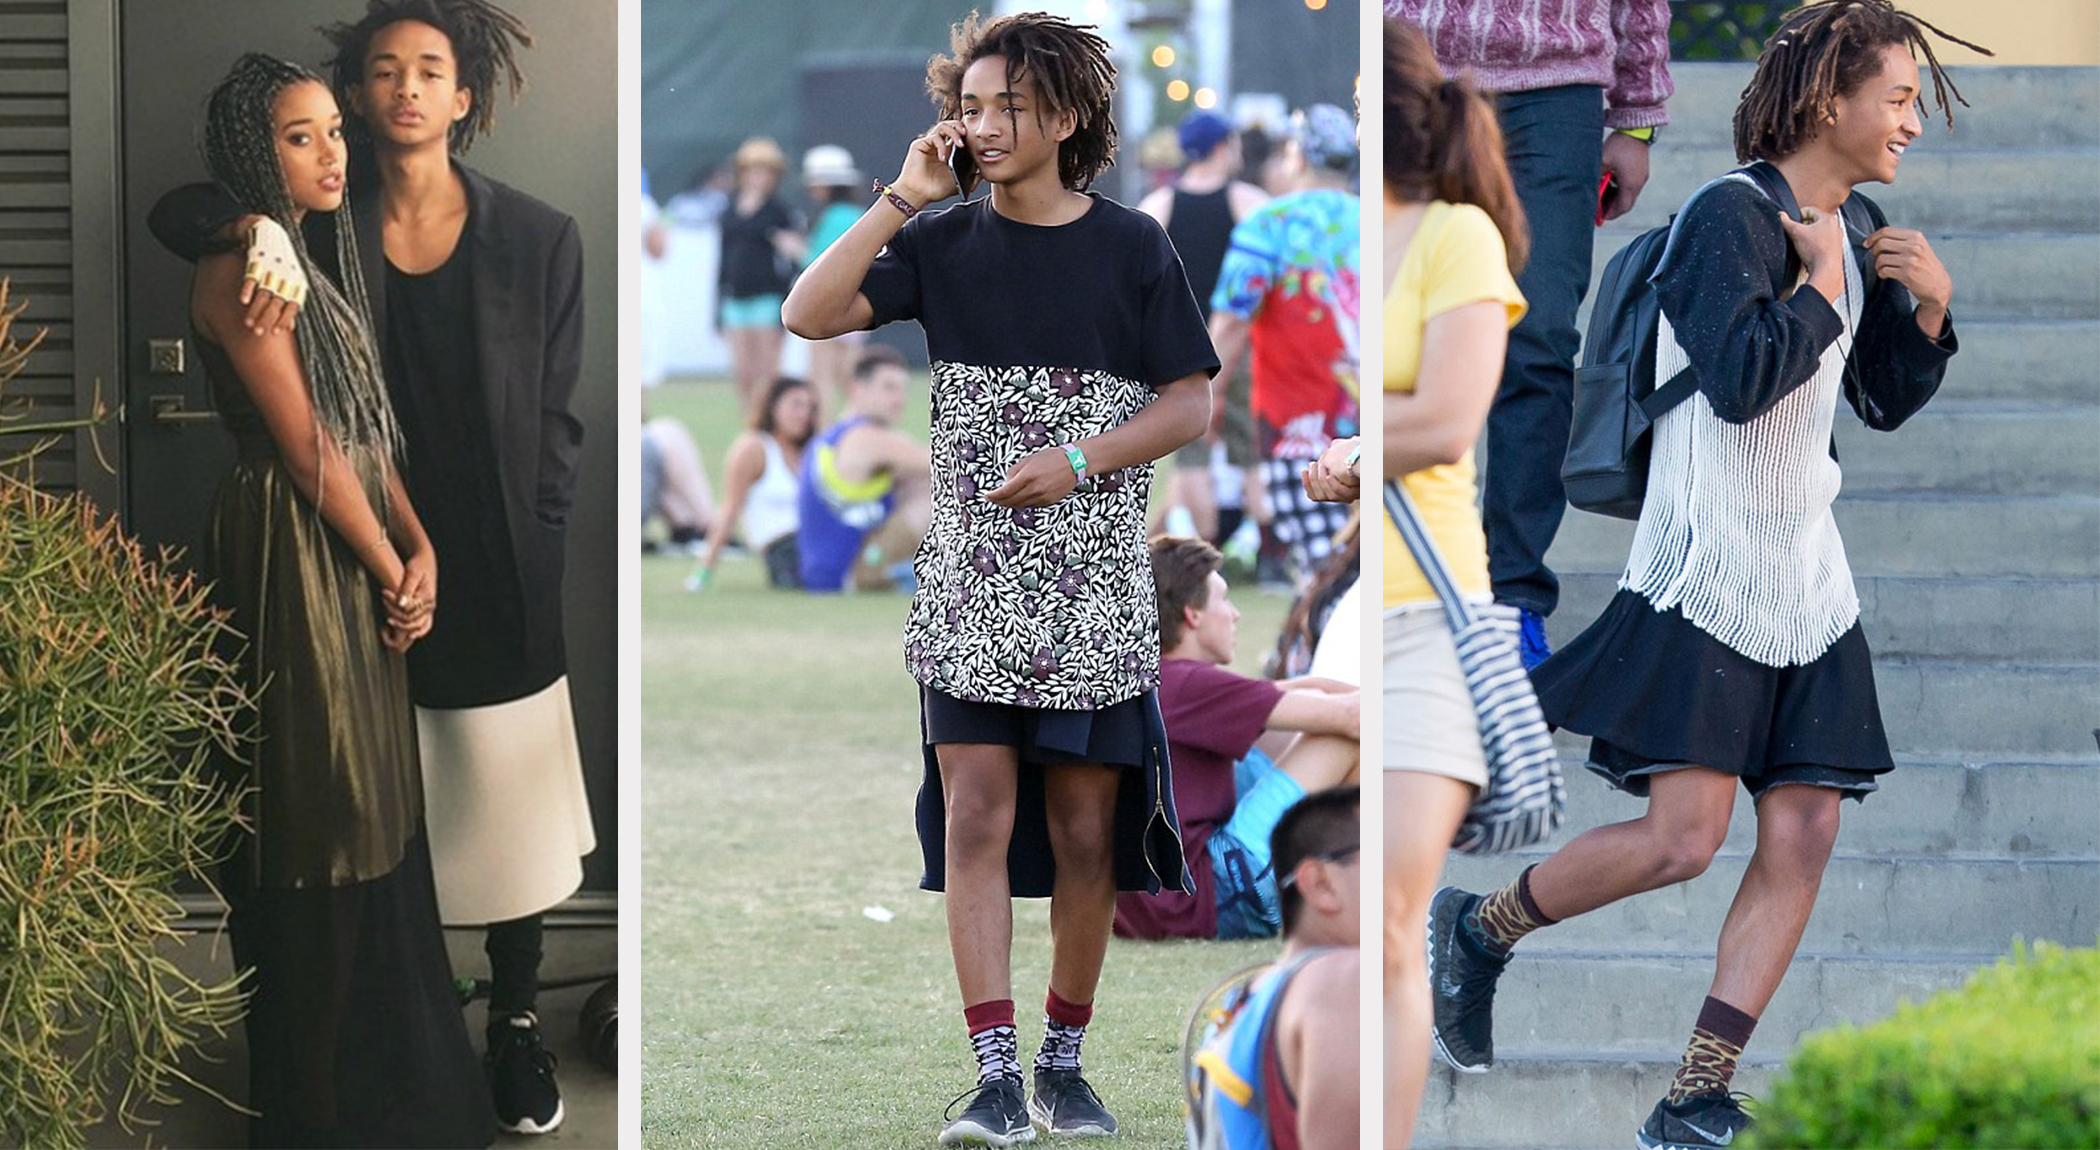 an analysis of racial elements in an advertisement by louis vuitton featuring jaden smith